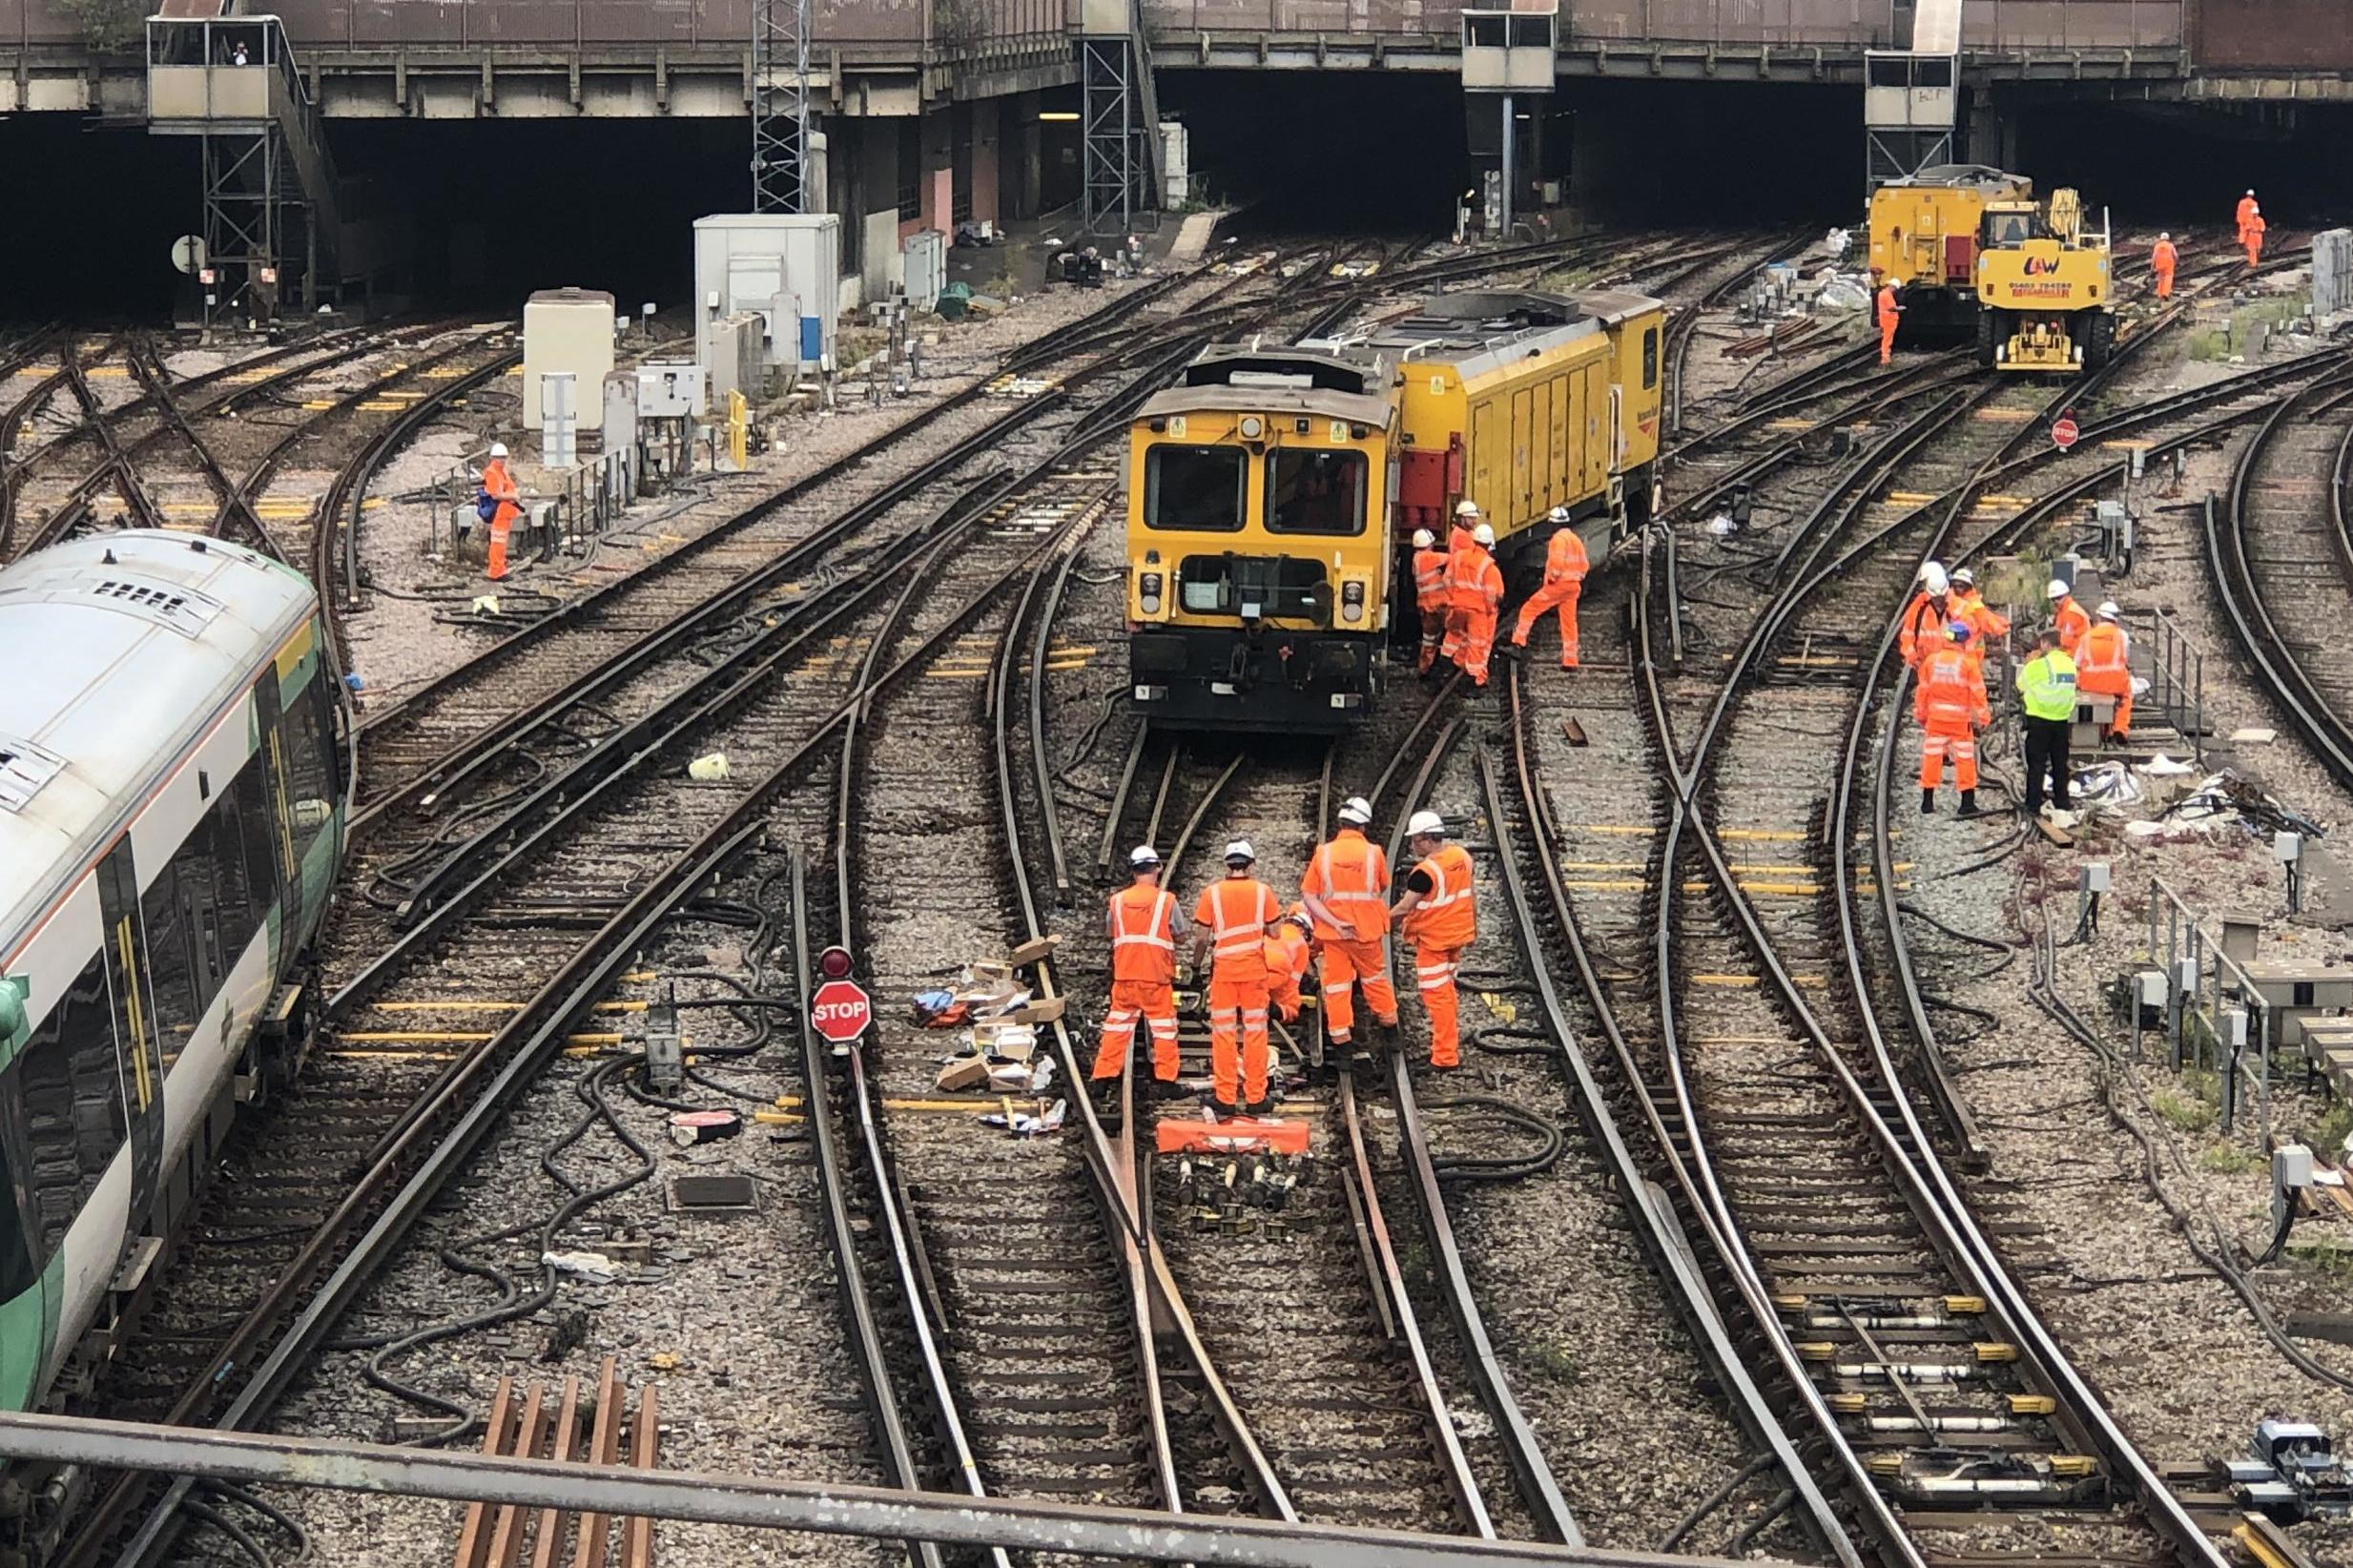 Rush-hour chaos at London Victoria station after train derails | The